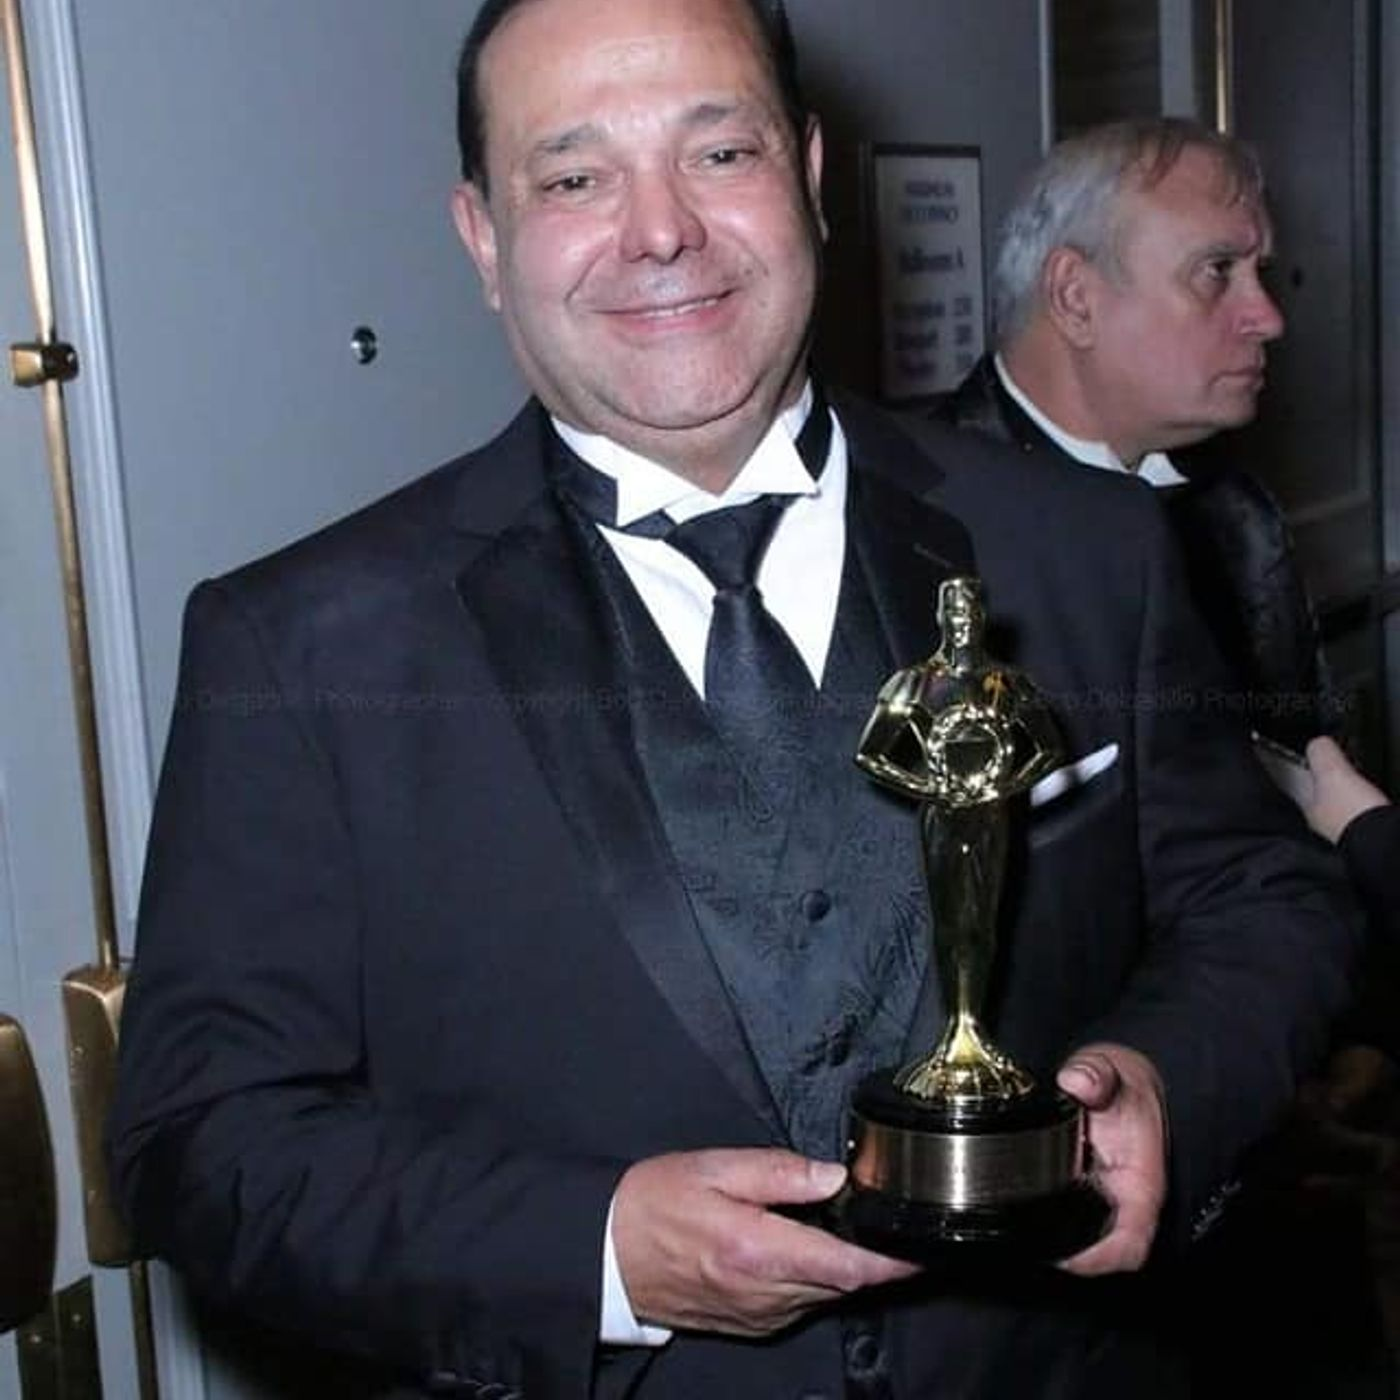 Ray Michaels, CEO, Actor, Director, Producer